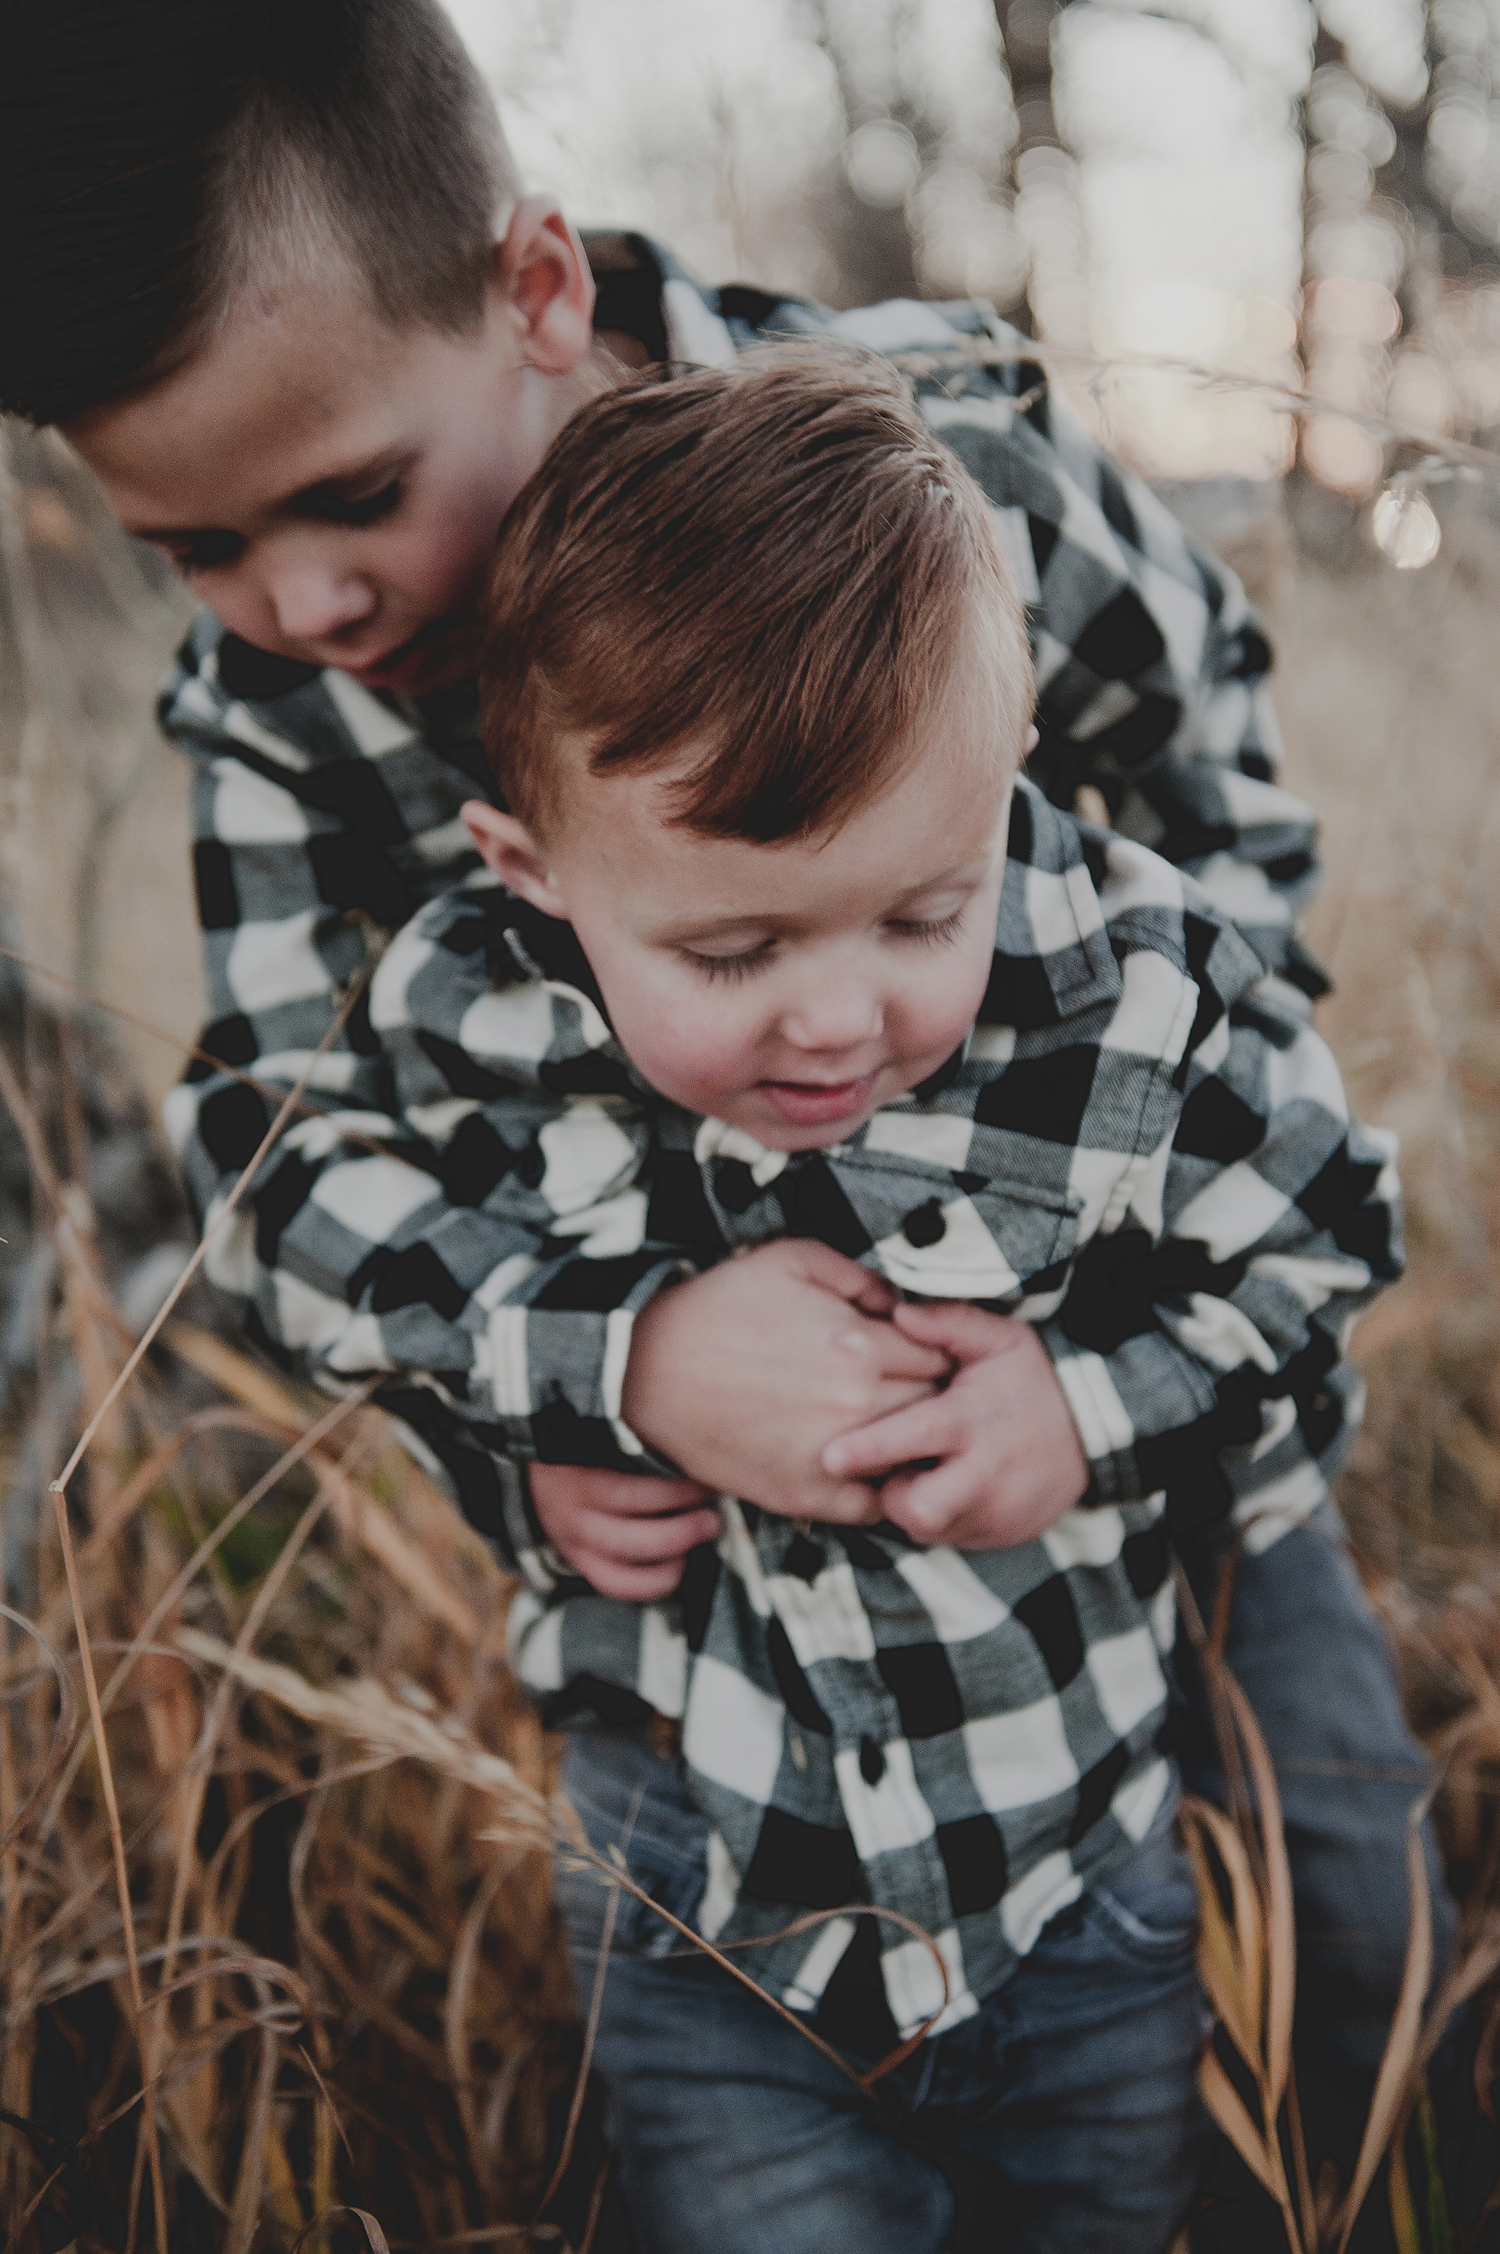 Brothers hugging each other